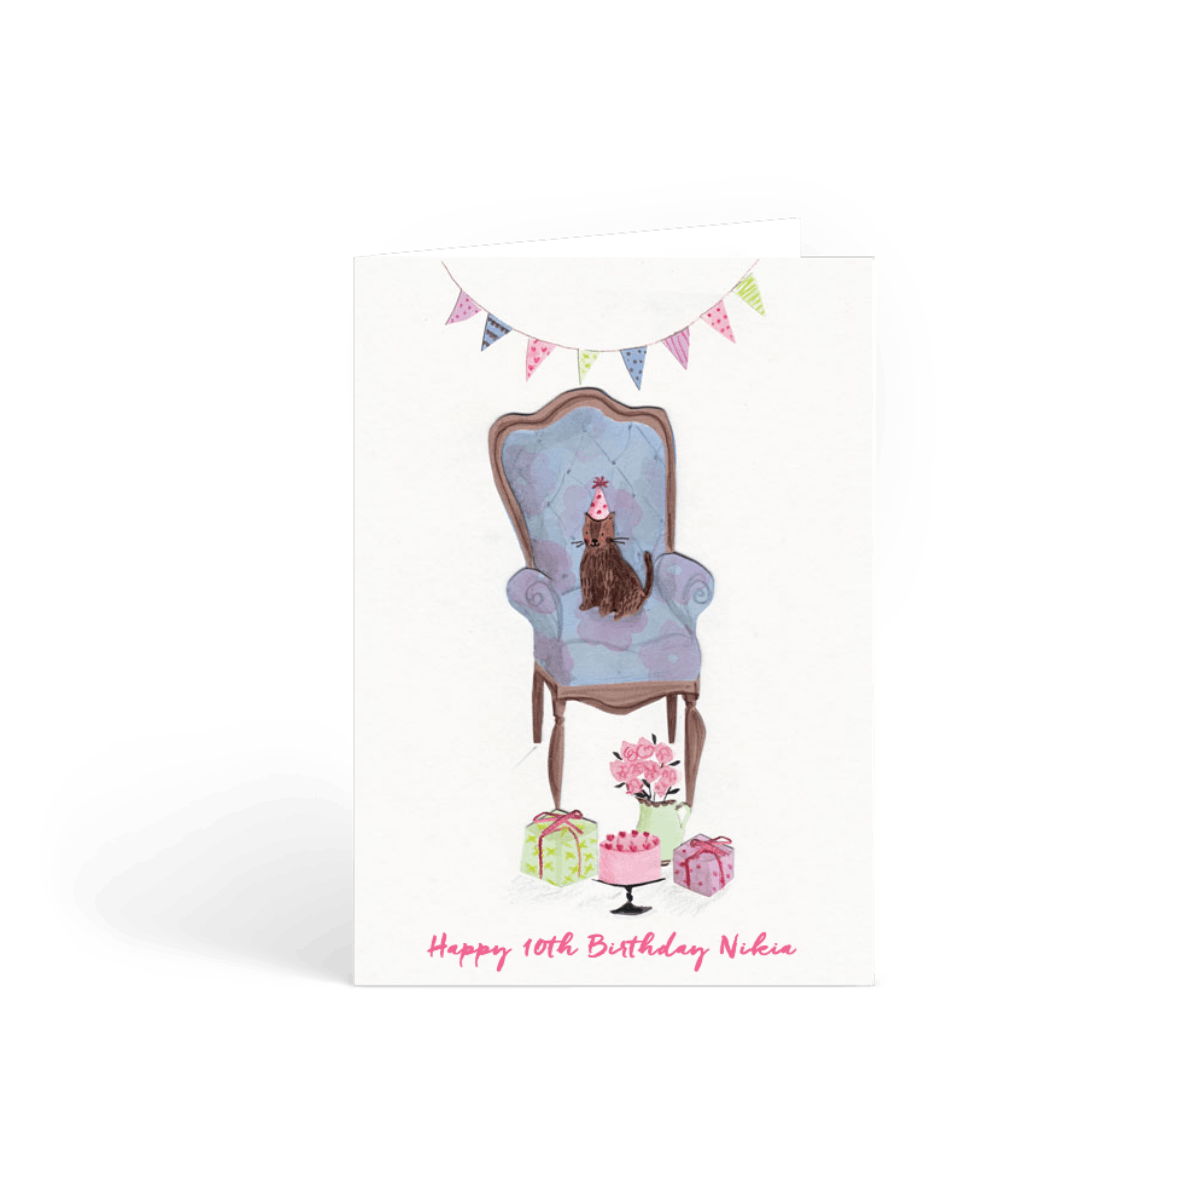 Https%3a%2f%2fwww.papier.com%2fproduct image%2f51120%2f2%2fbirthday kitty 12522 front 1542379415.png?ixlib=rb 1.1